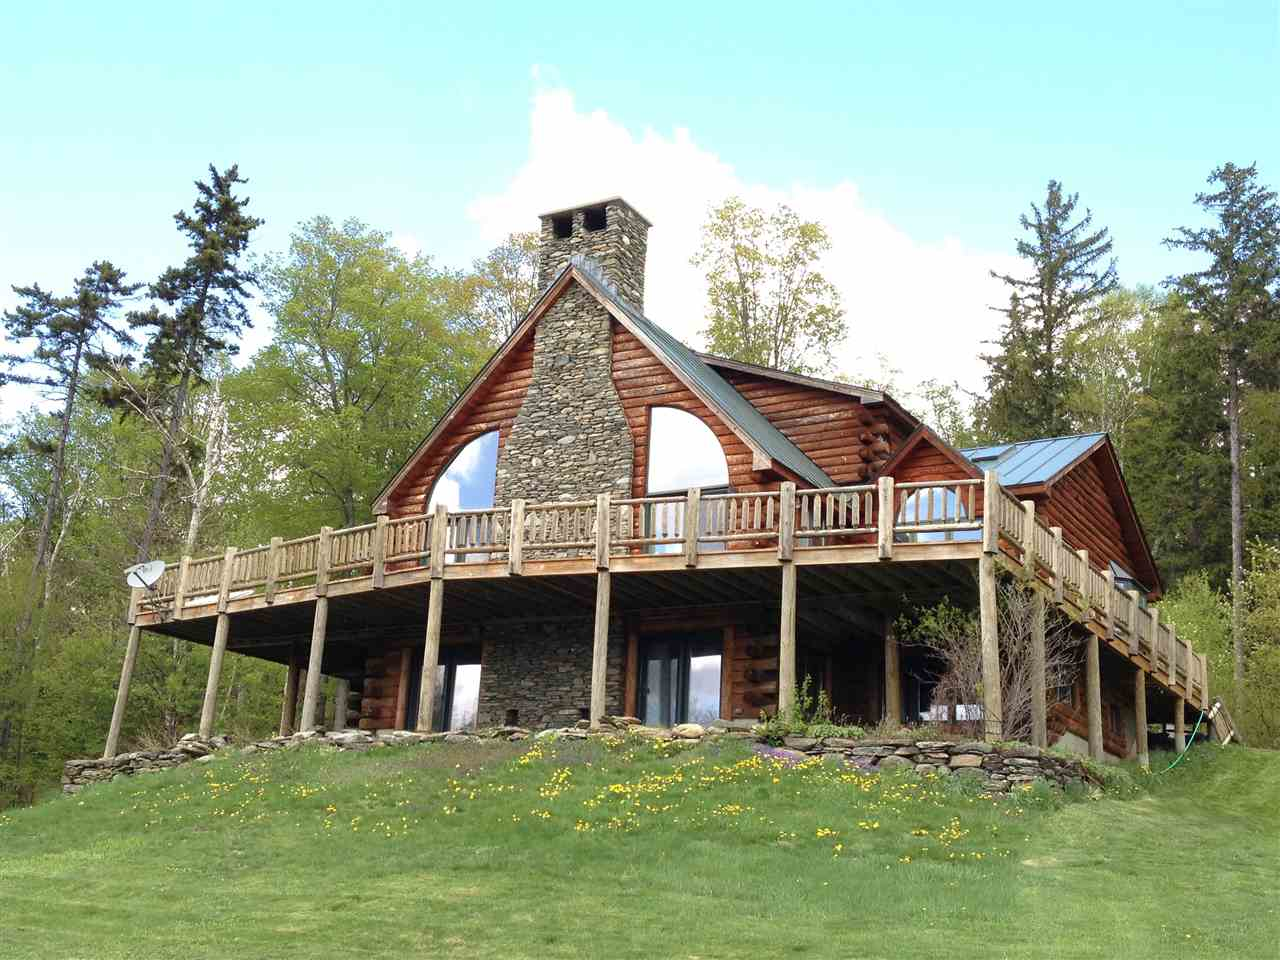 Photo of 421 Stagecoach Road Fayston VT 05673